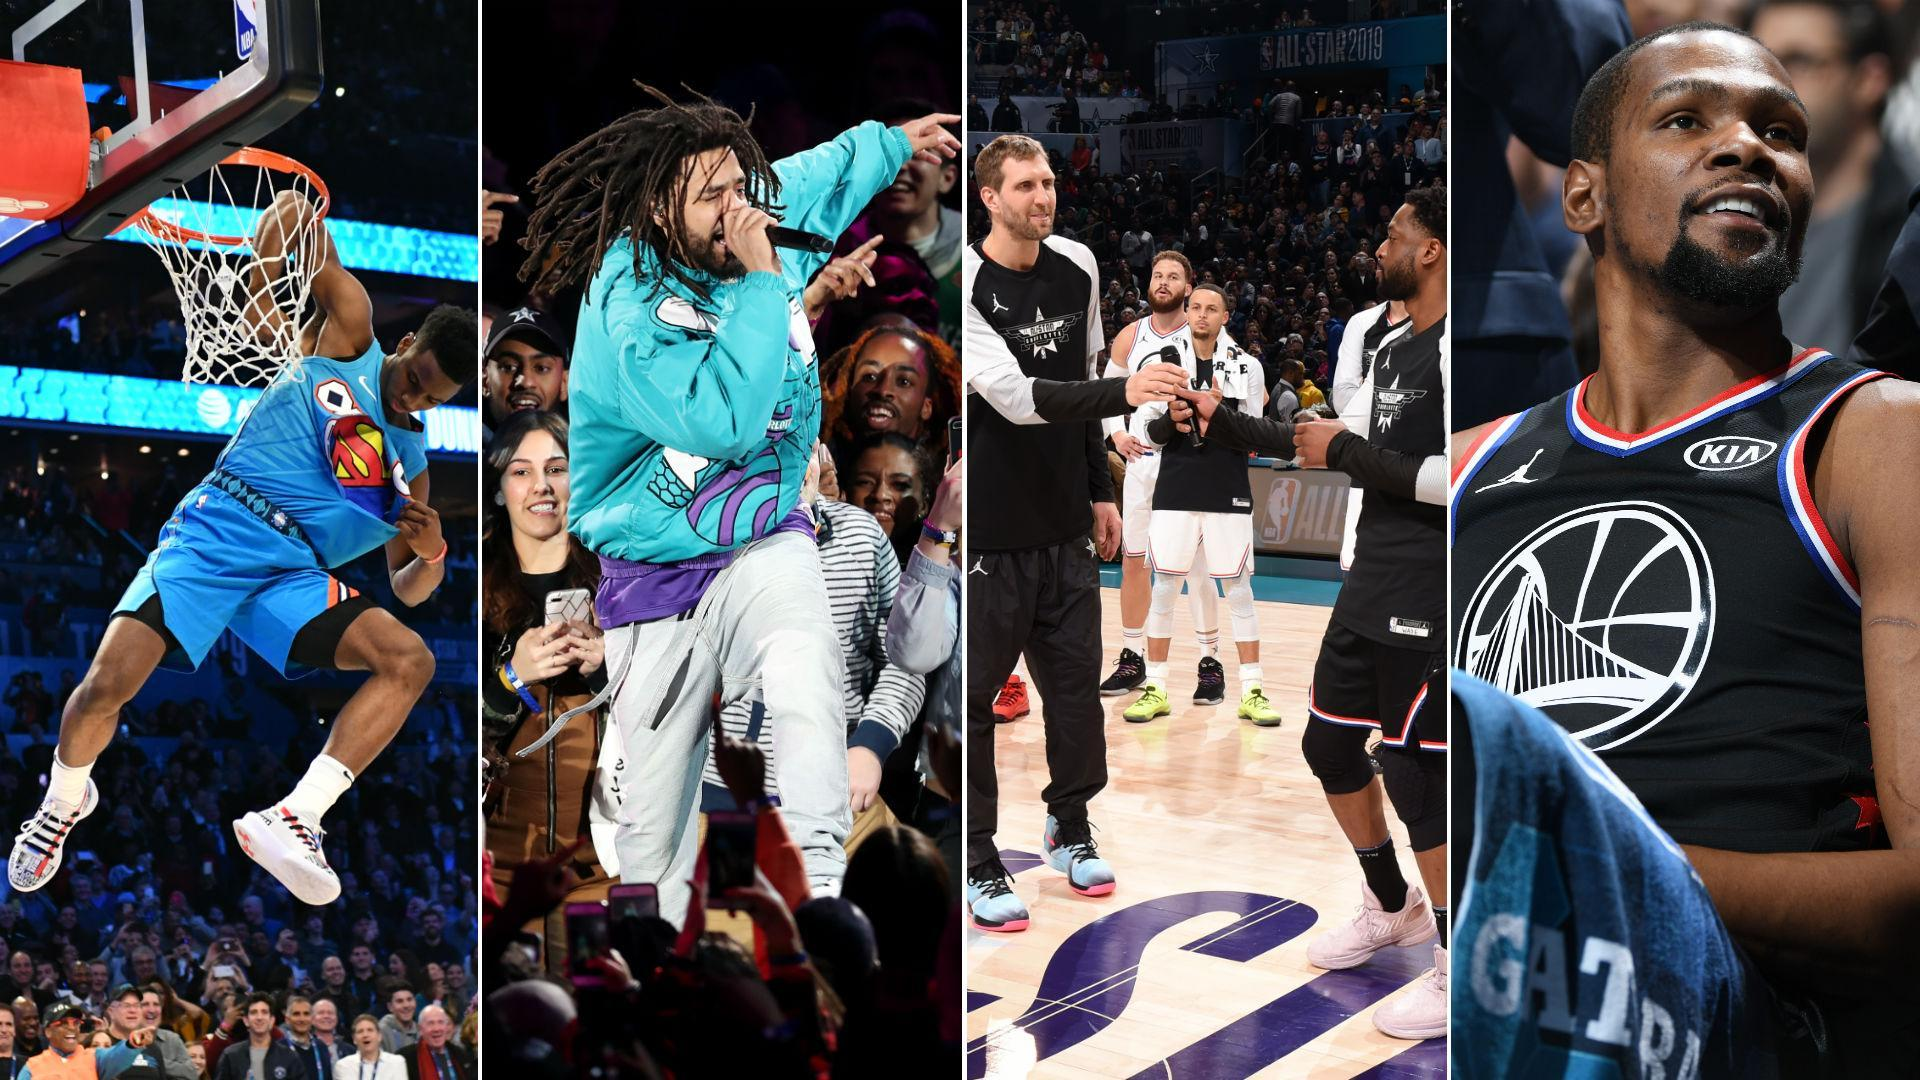 Nba All Star Halftime Show 2020.Recapping Standout Moments From Nba All Star 2019 Weekend